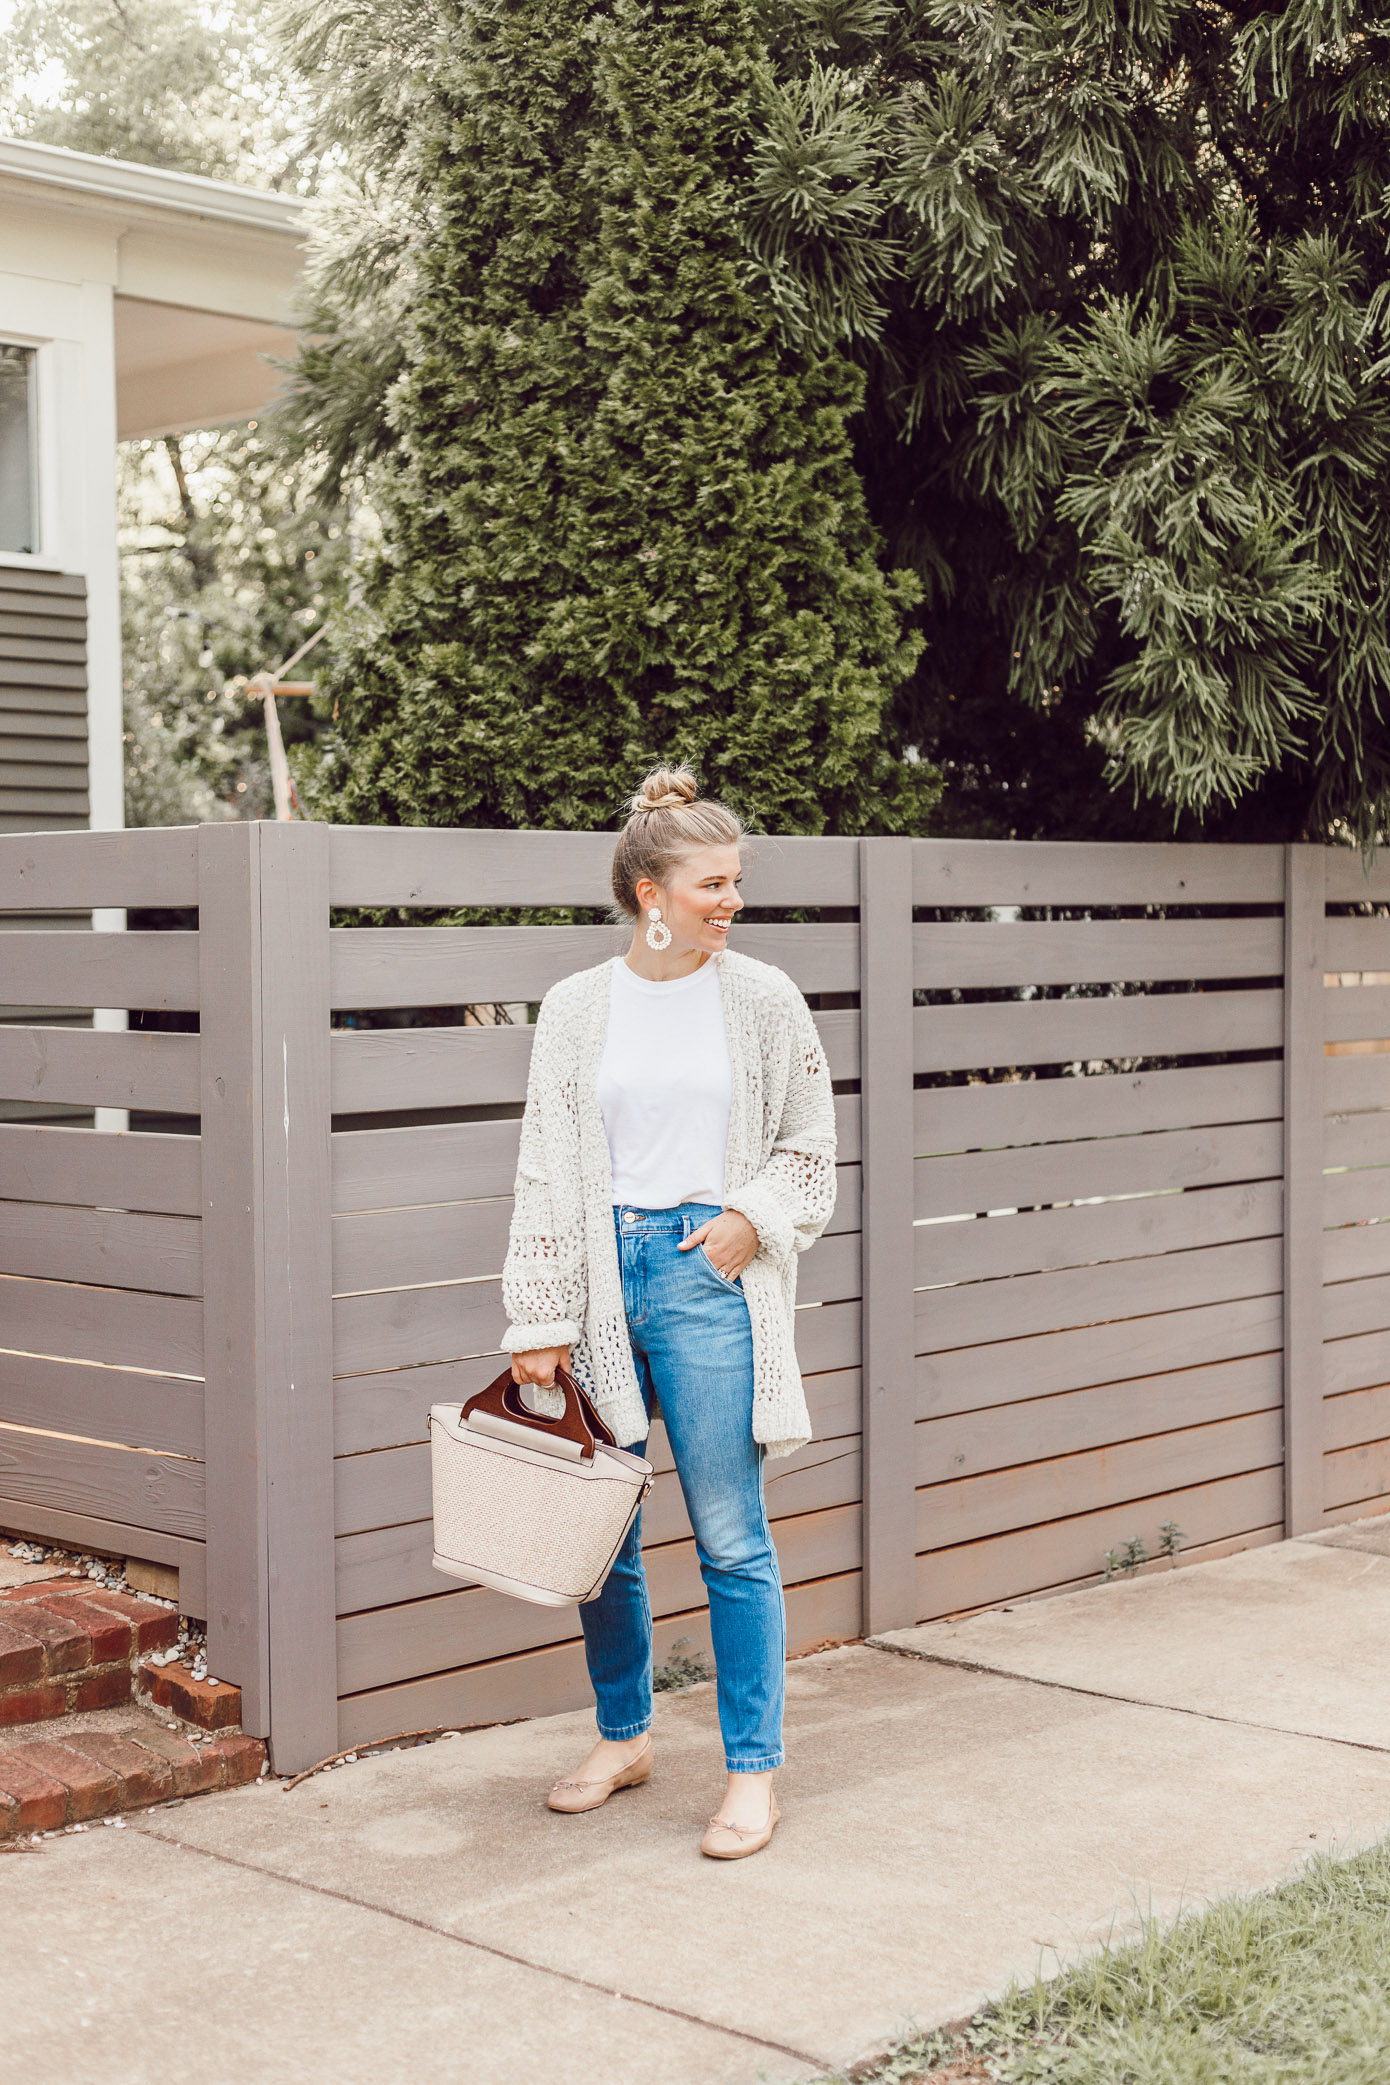 Laura Leigh of Louella Reese styles a basic white tee and jeans combination for summer that will transition perfectly into fall with the addition of a Free People Crochet Cardigan